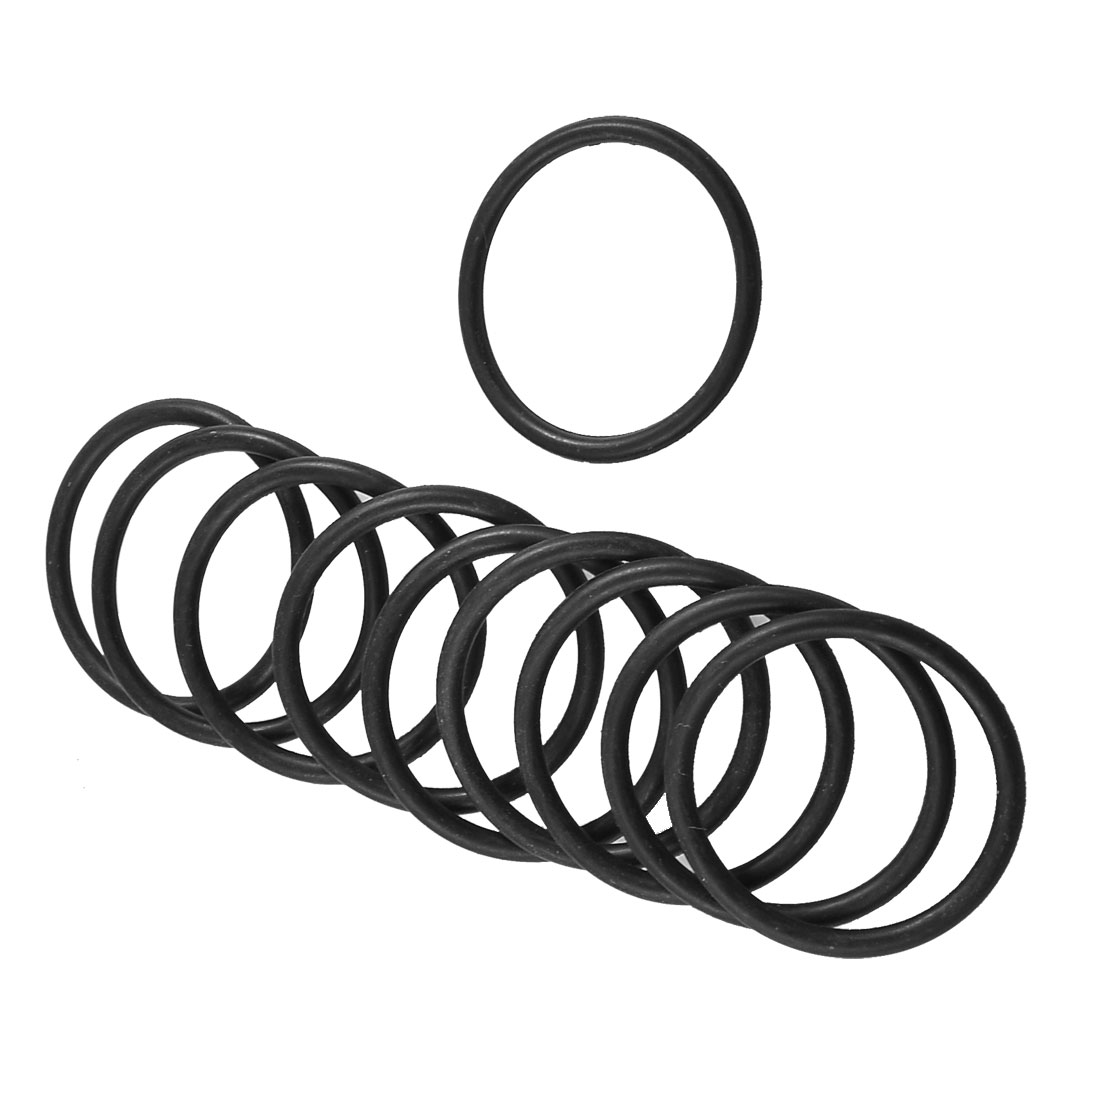 10 Pcs Mechanical Black Rubber O Ring Oil Seal Gaskets 38mm x 32mm x 3.1mm